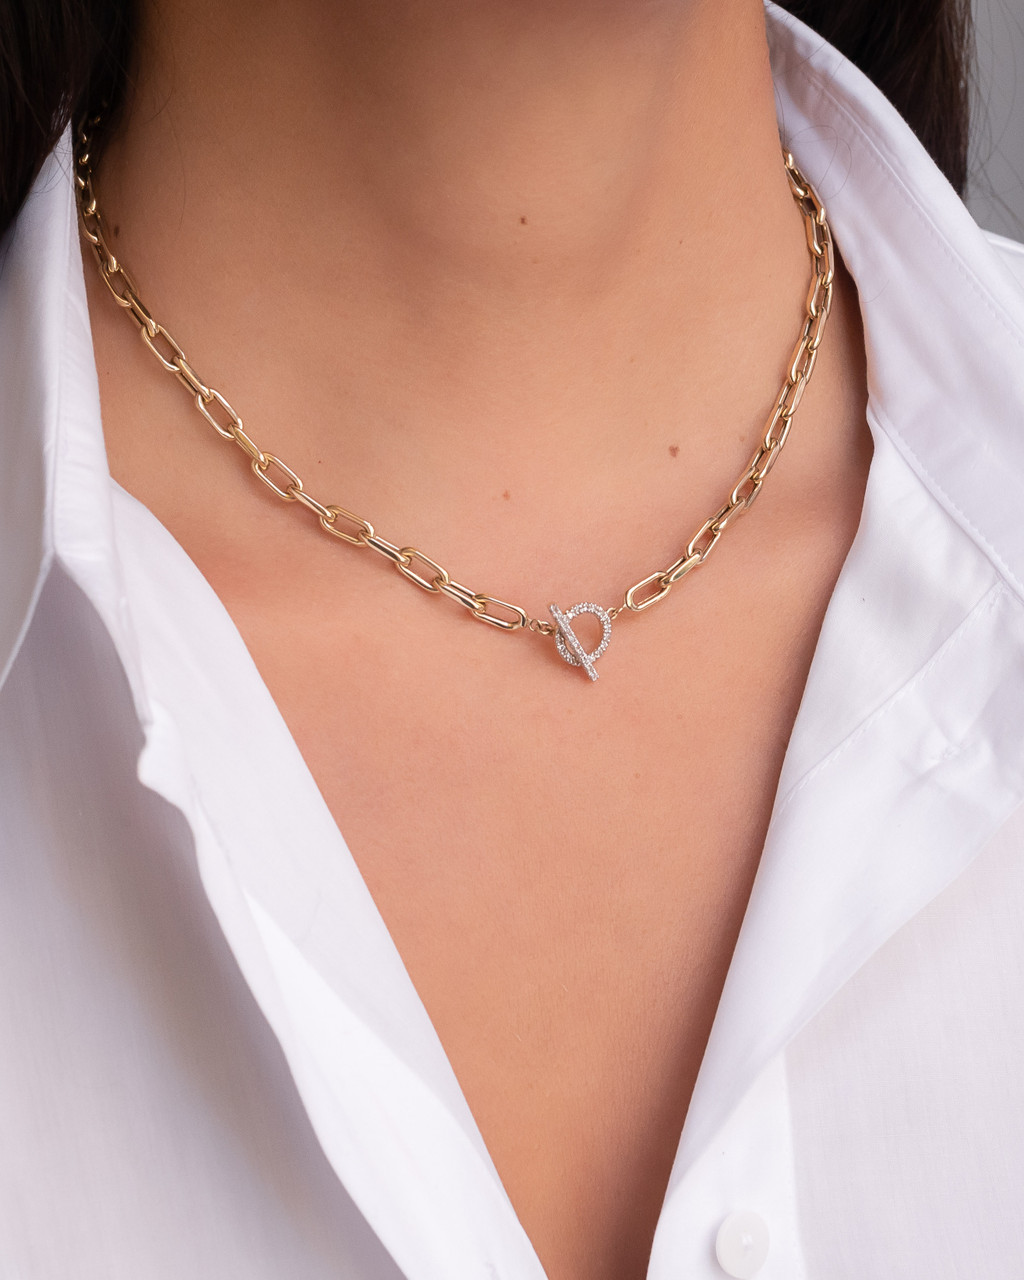 14k Gold Large Open Link Chain with Diamond Toggle Necklace- Out of Stock